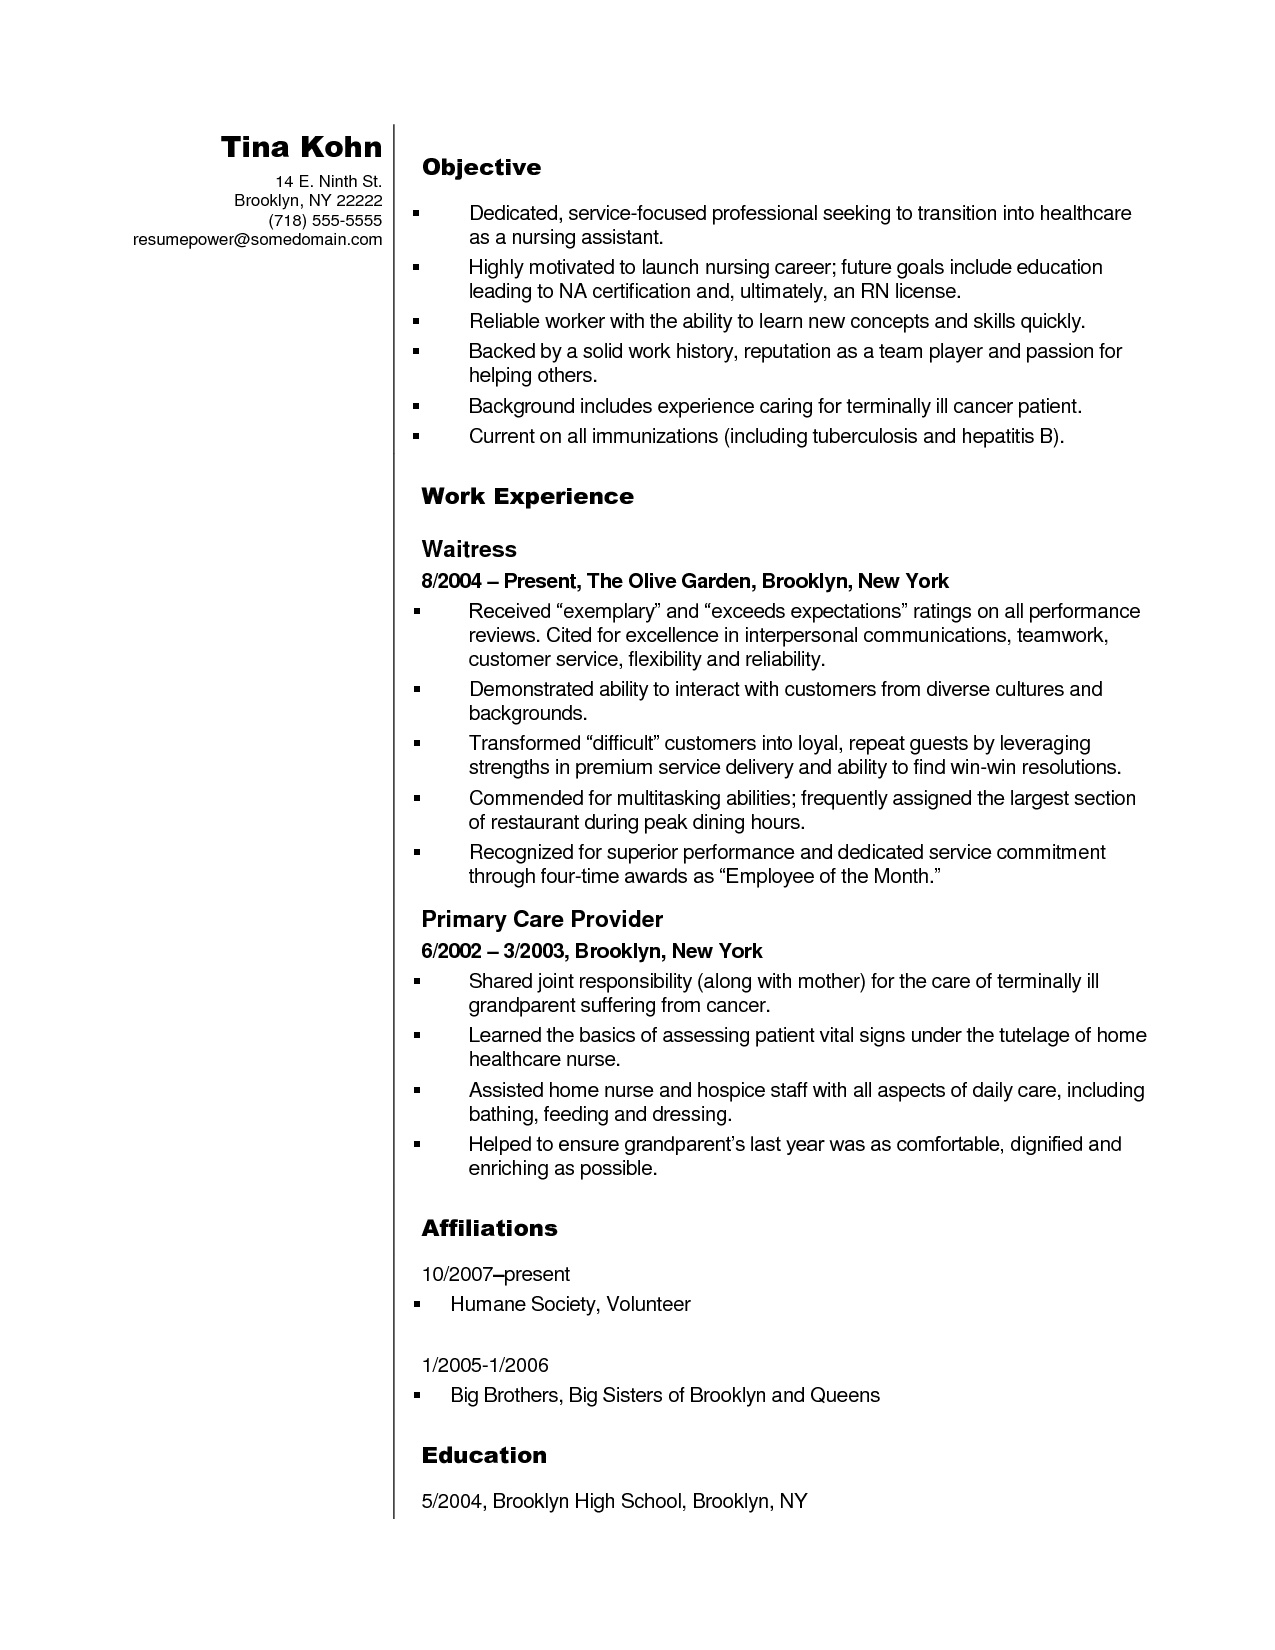 Cna Resume with No Experience - Nursing assistant Resume Objective Examples Fresh Cna Resume Sample